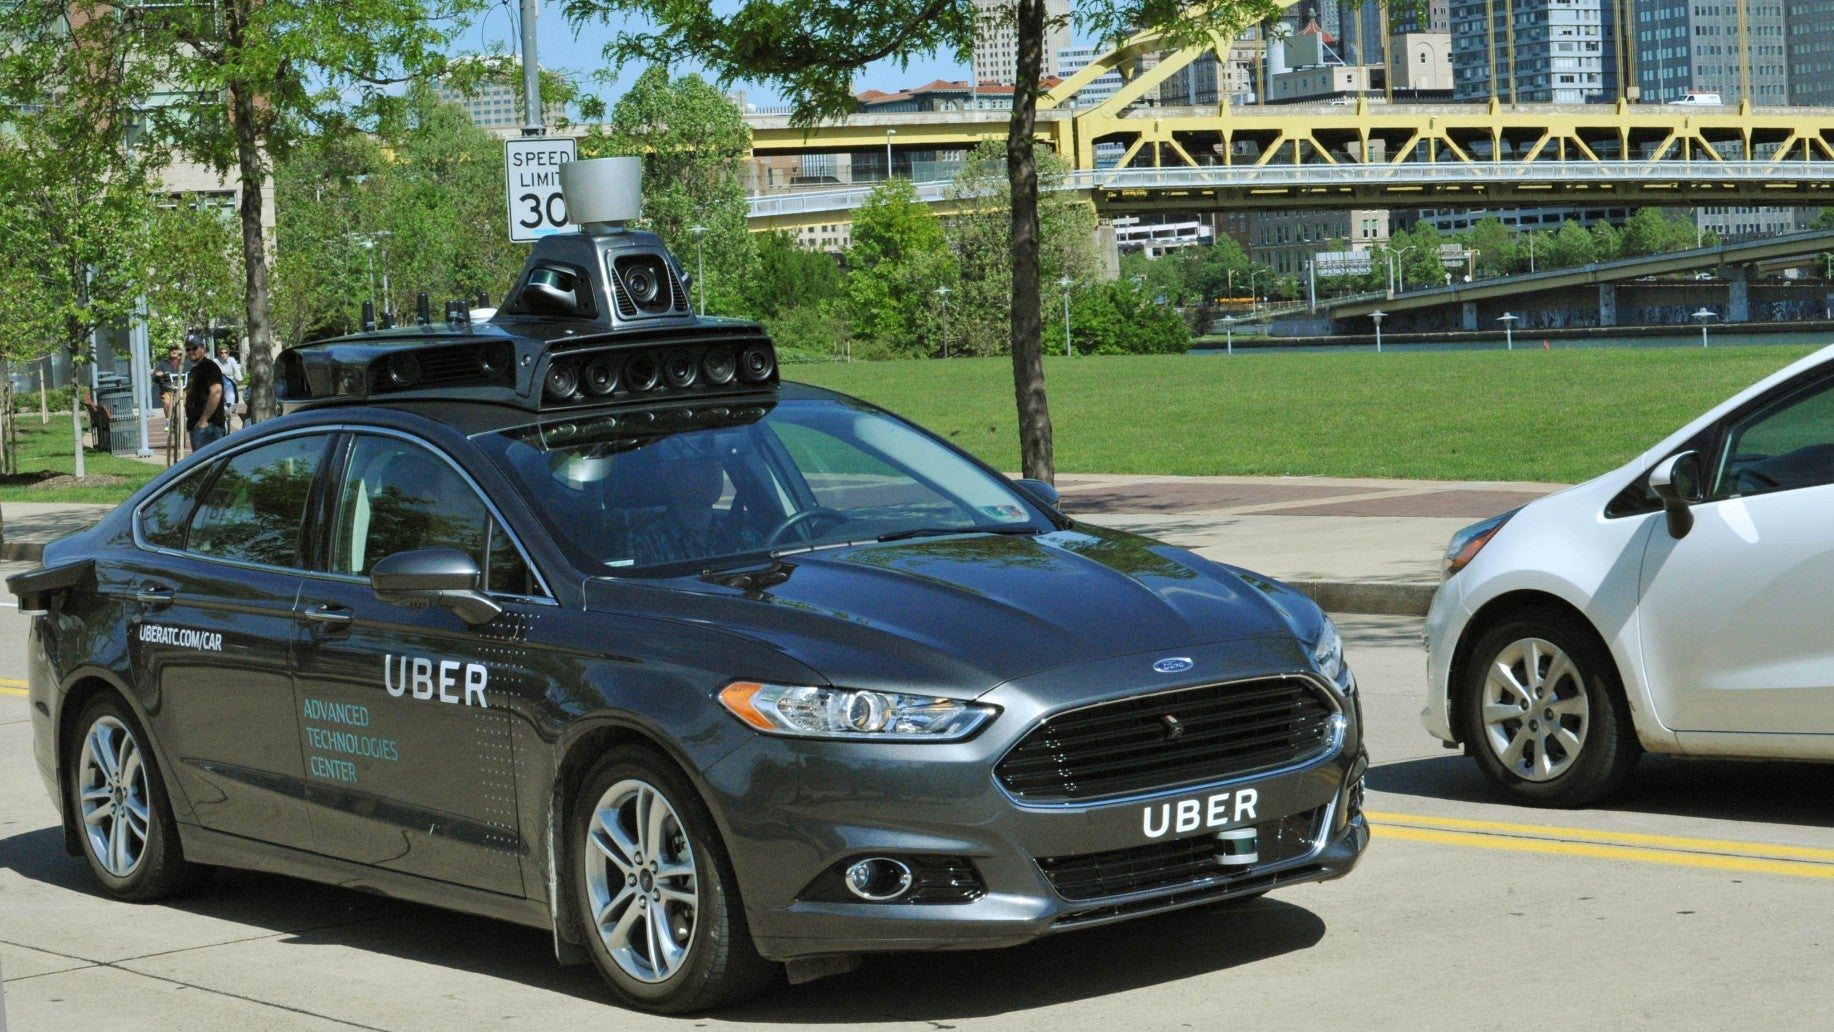 This Is Our First Good Look At Uber's Self-Driving Car